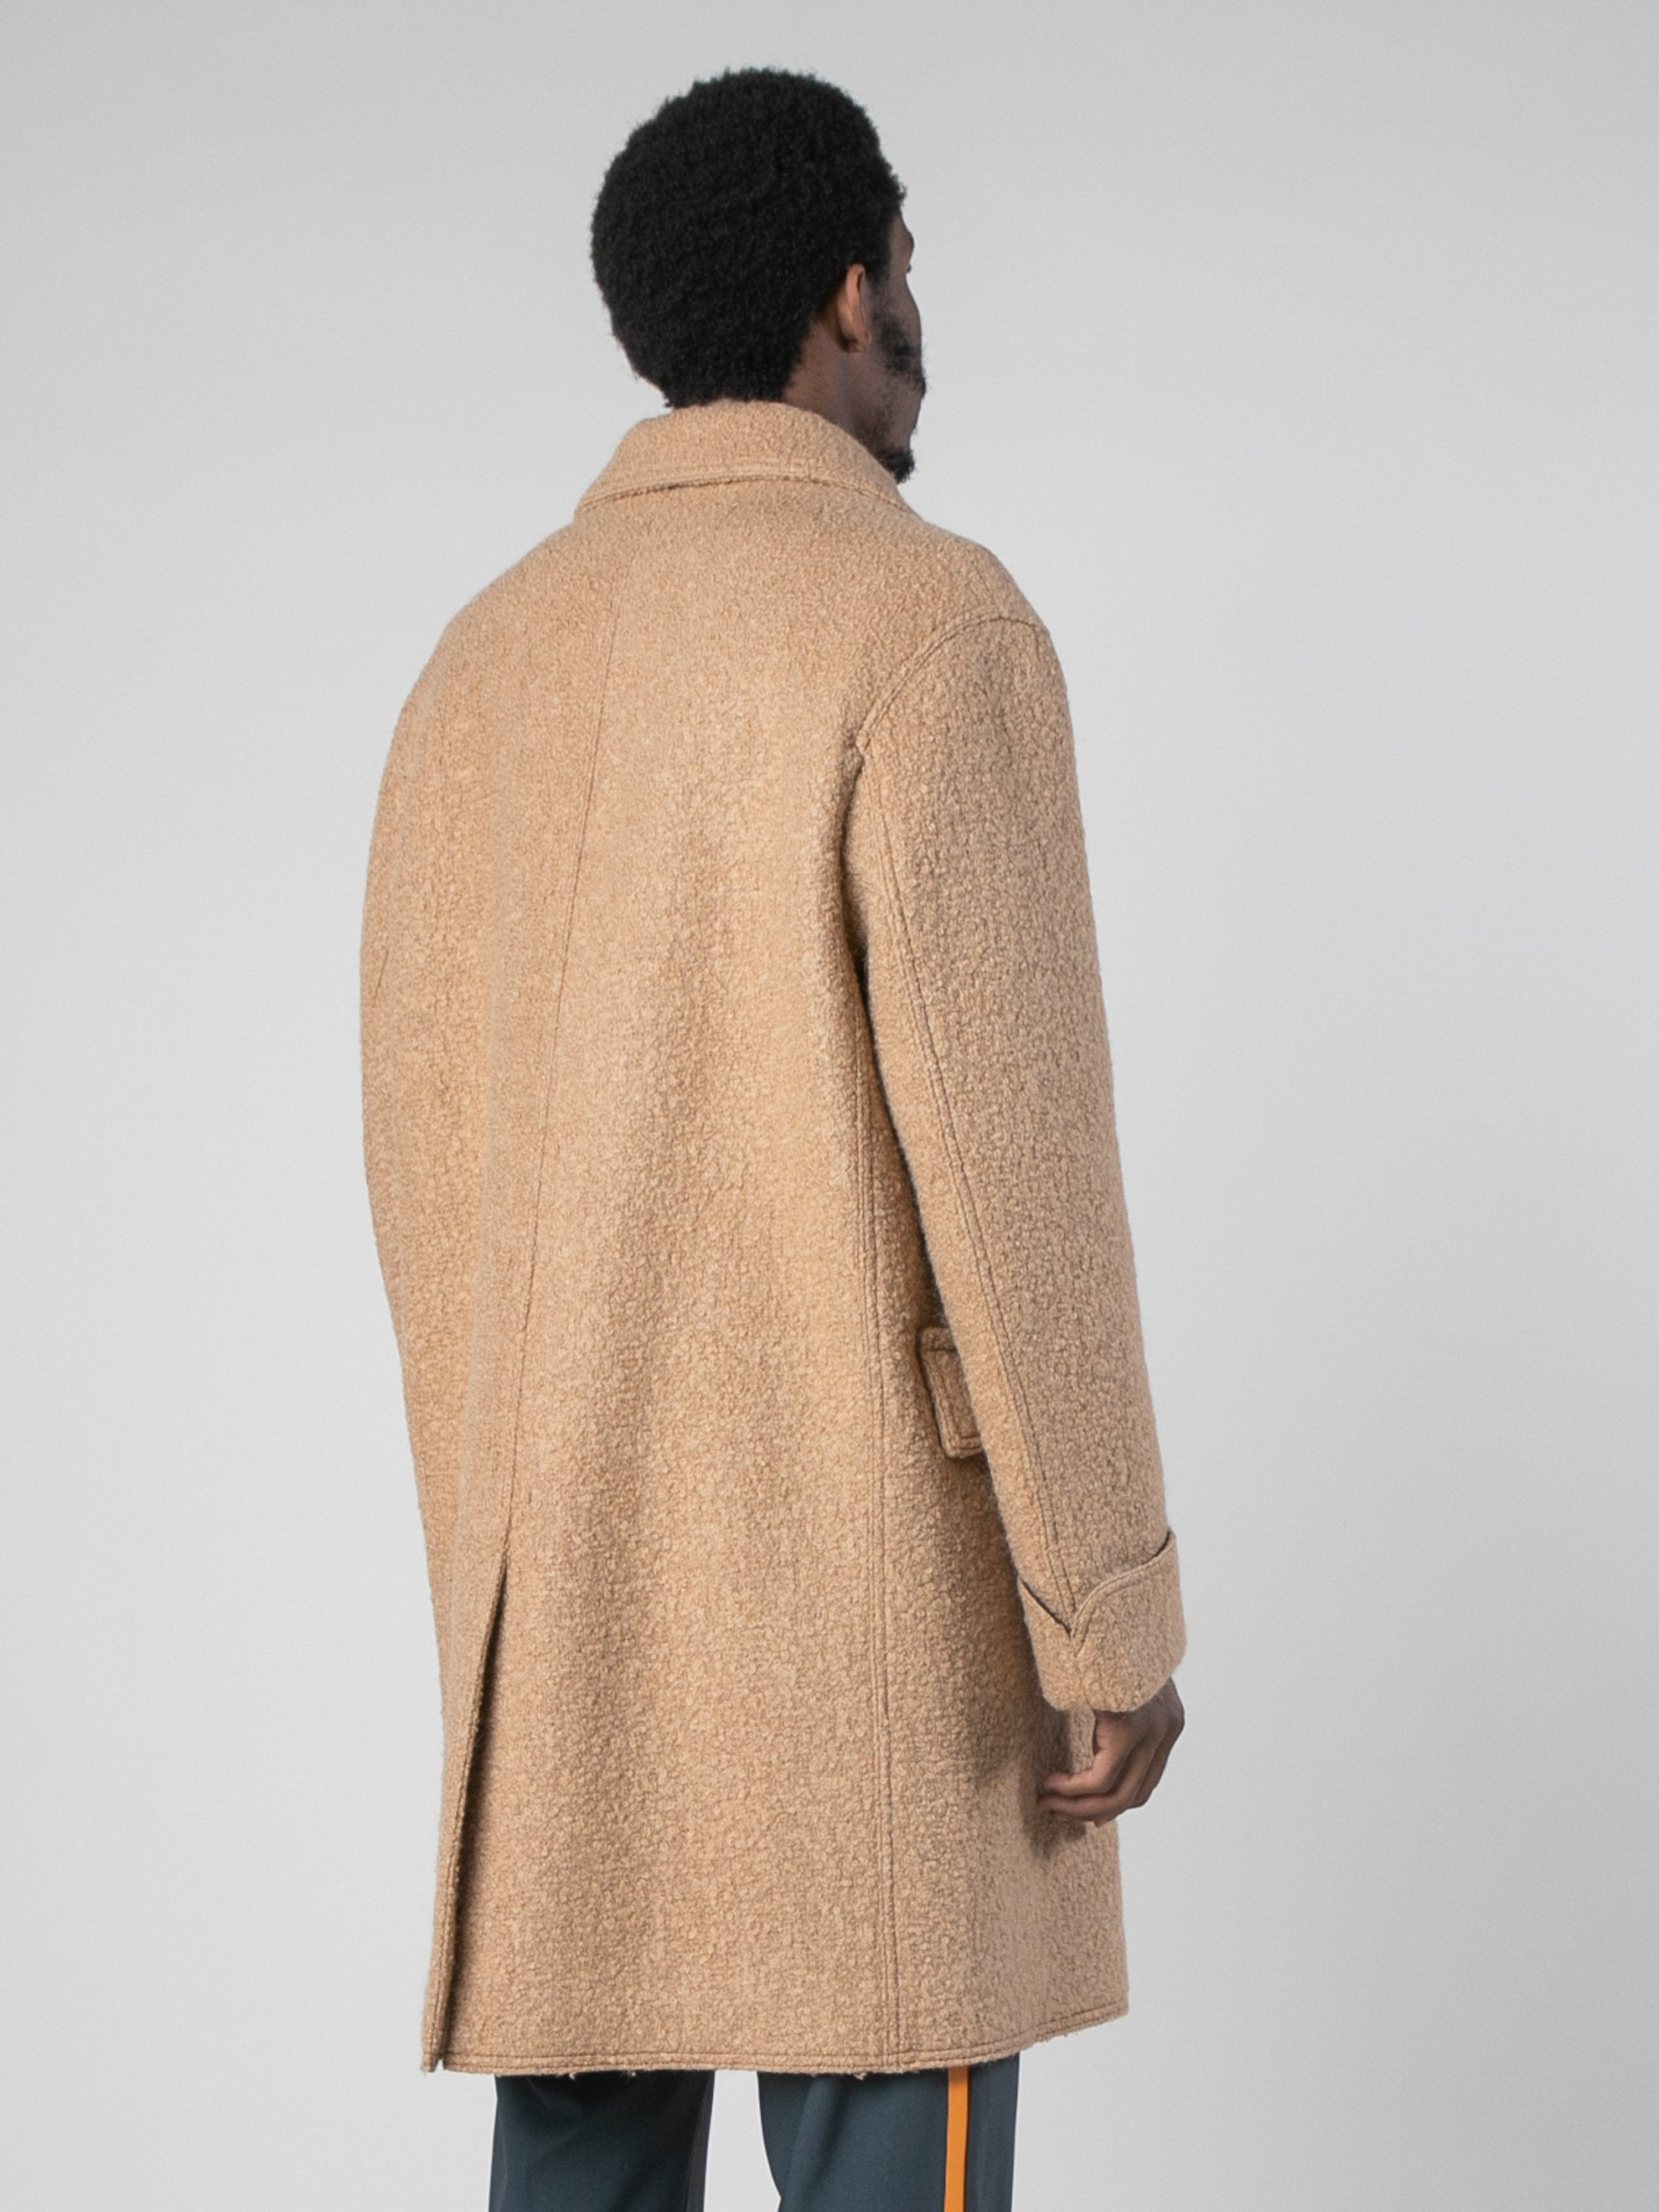 Camel Leopard Edged Overcoat 5